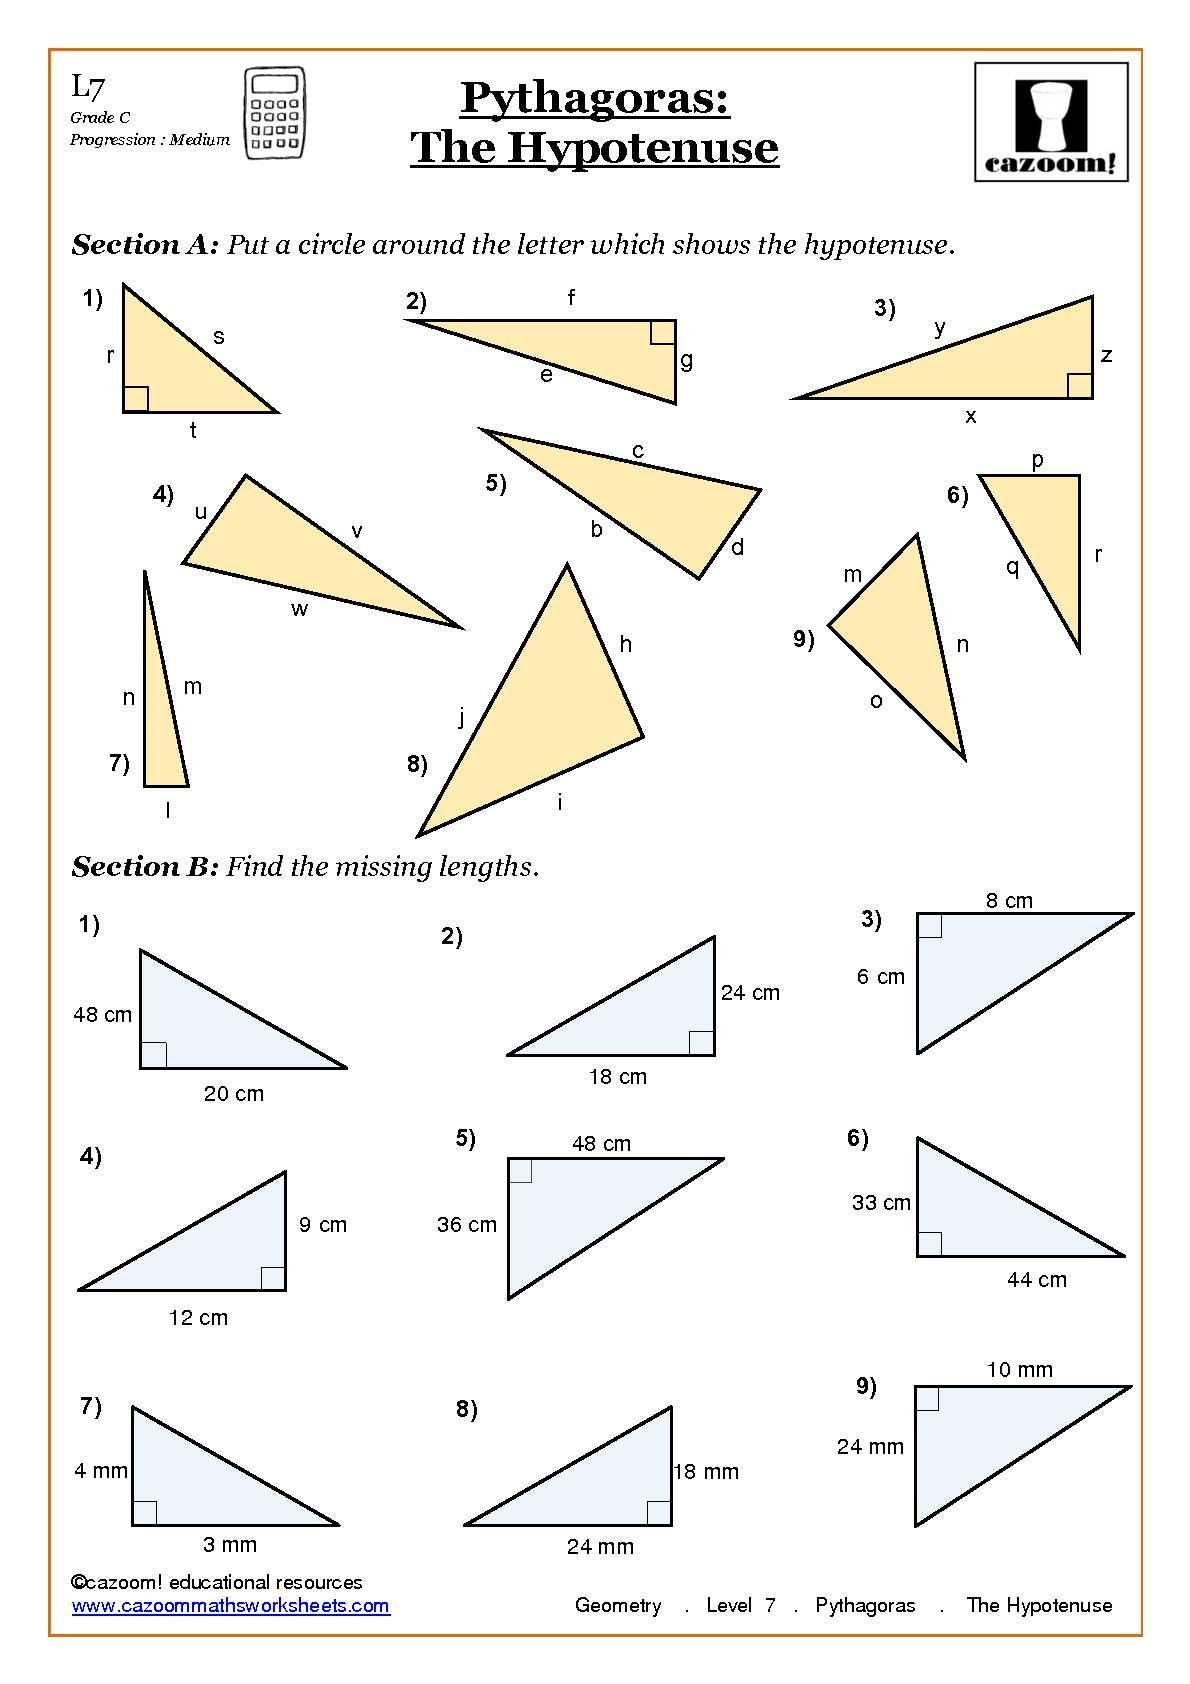 Worksheets Geometry Worksheets With Answers trigonometry and pythagoras worksheets maths worksheets